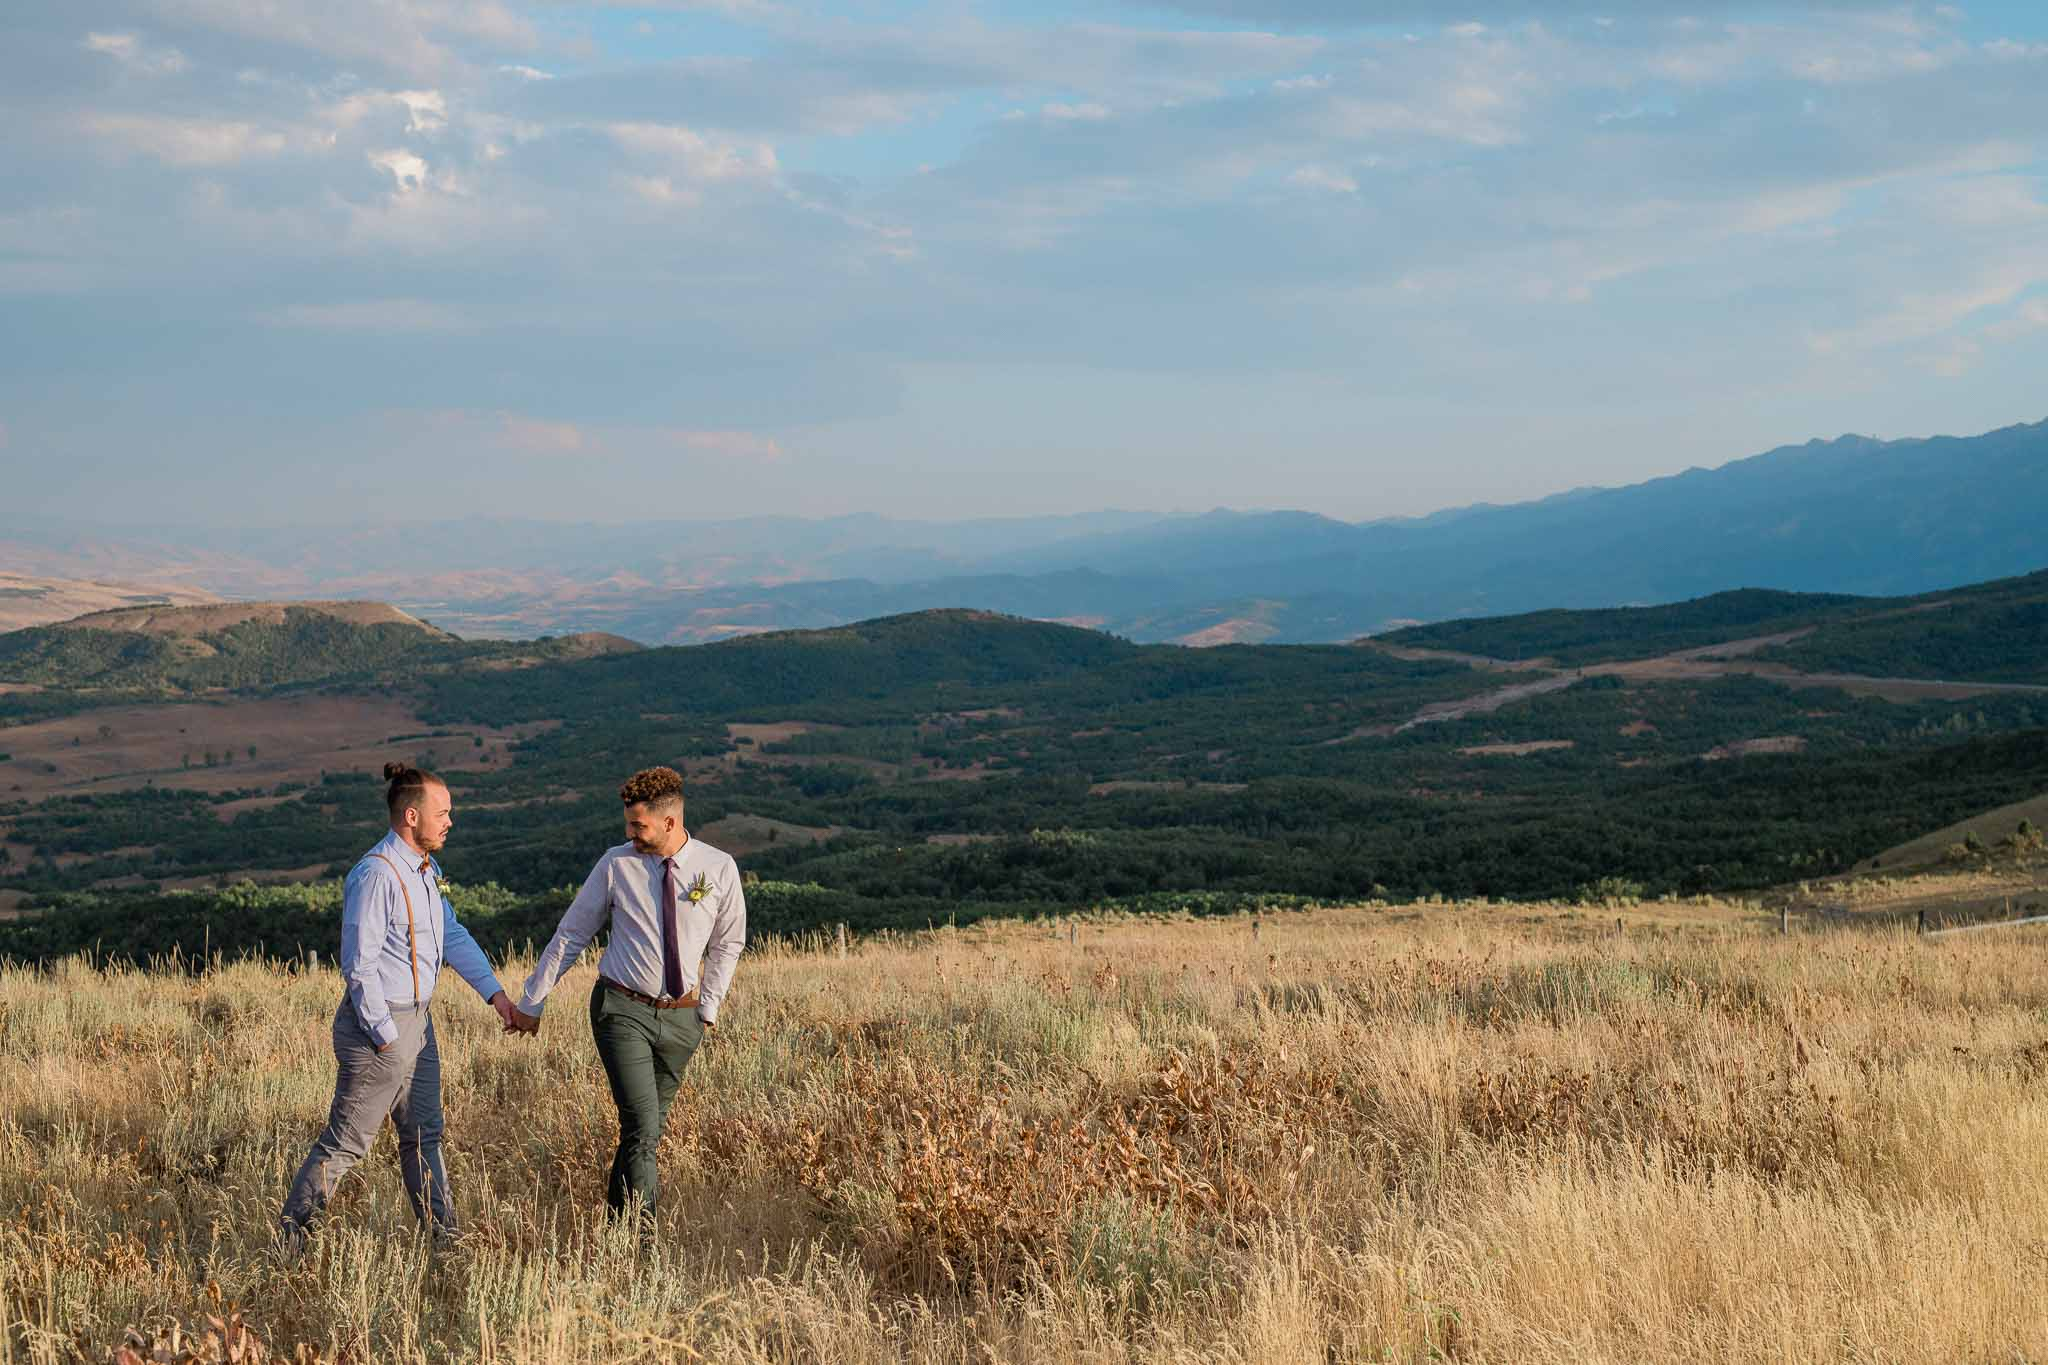 Two grooms walk on field with mountain landscape in the background in Utah